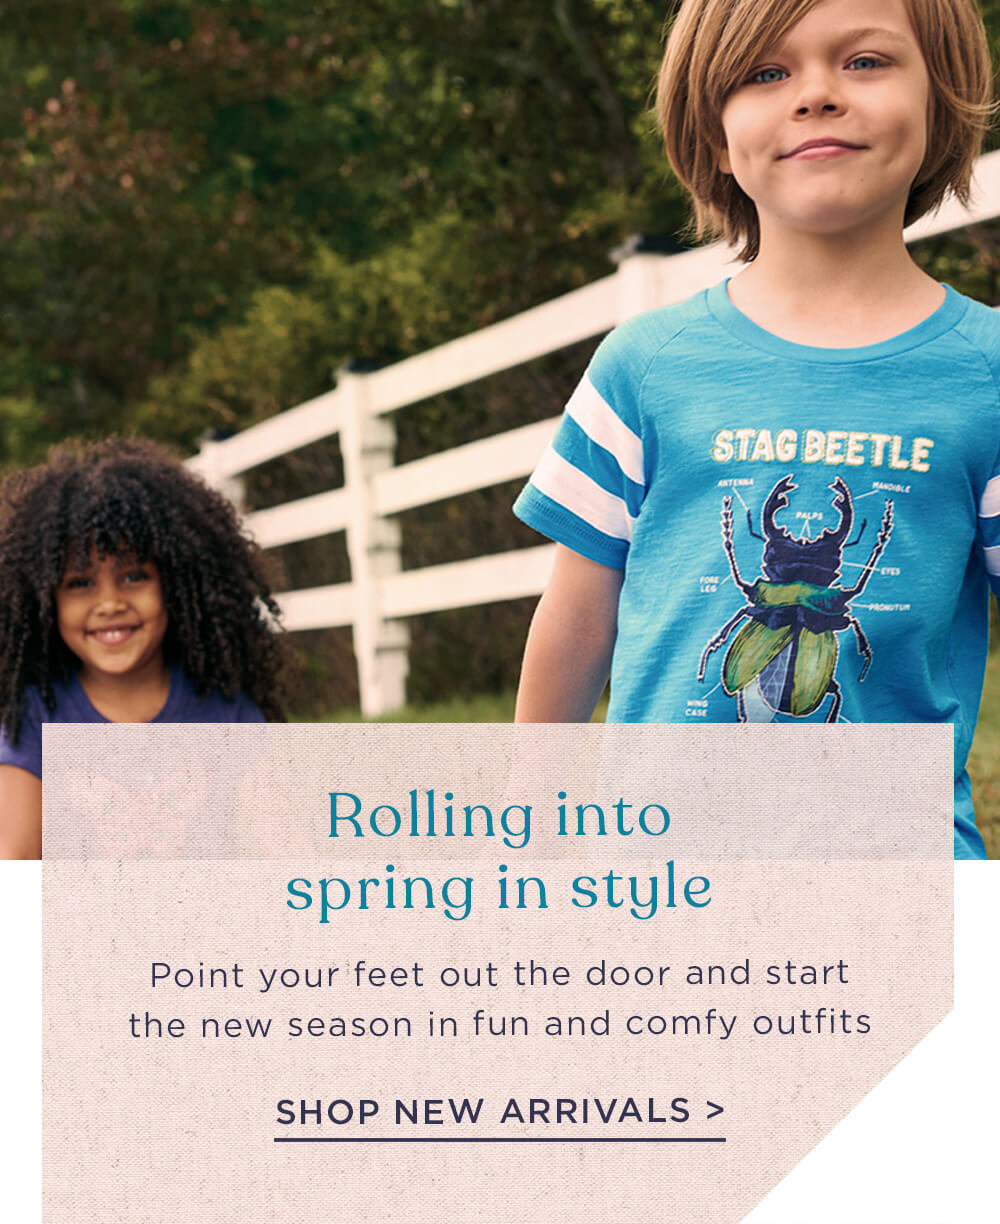 Rolling into spring in style: shop new arrivals